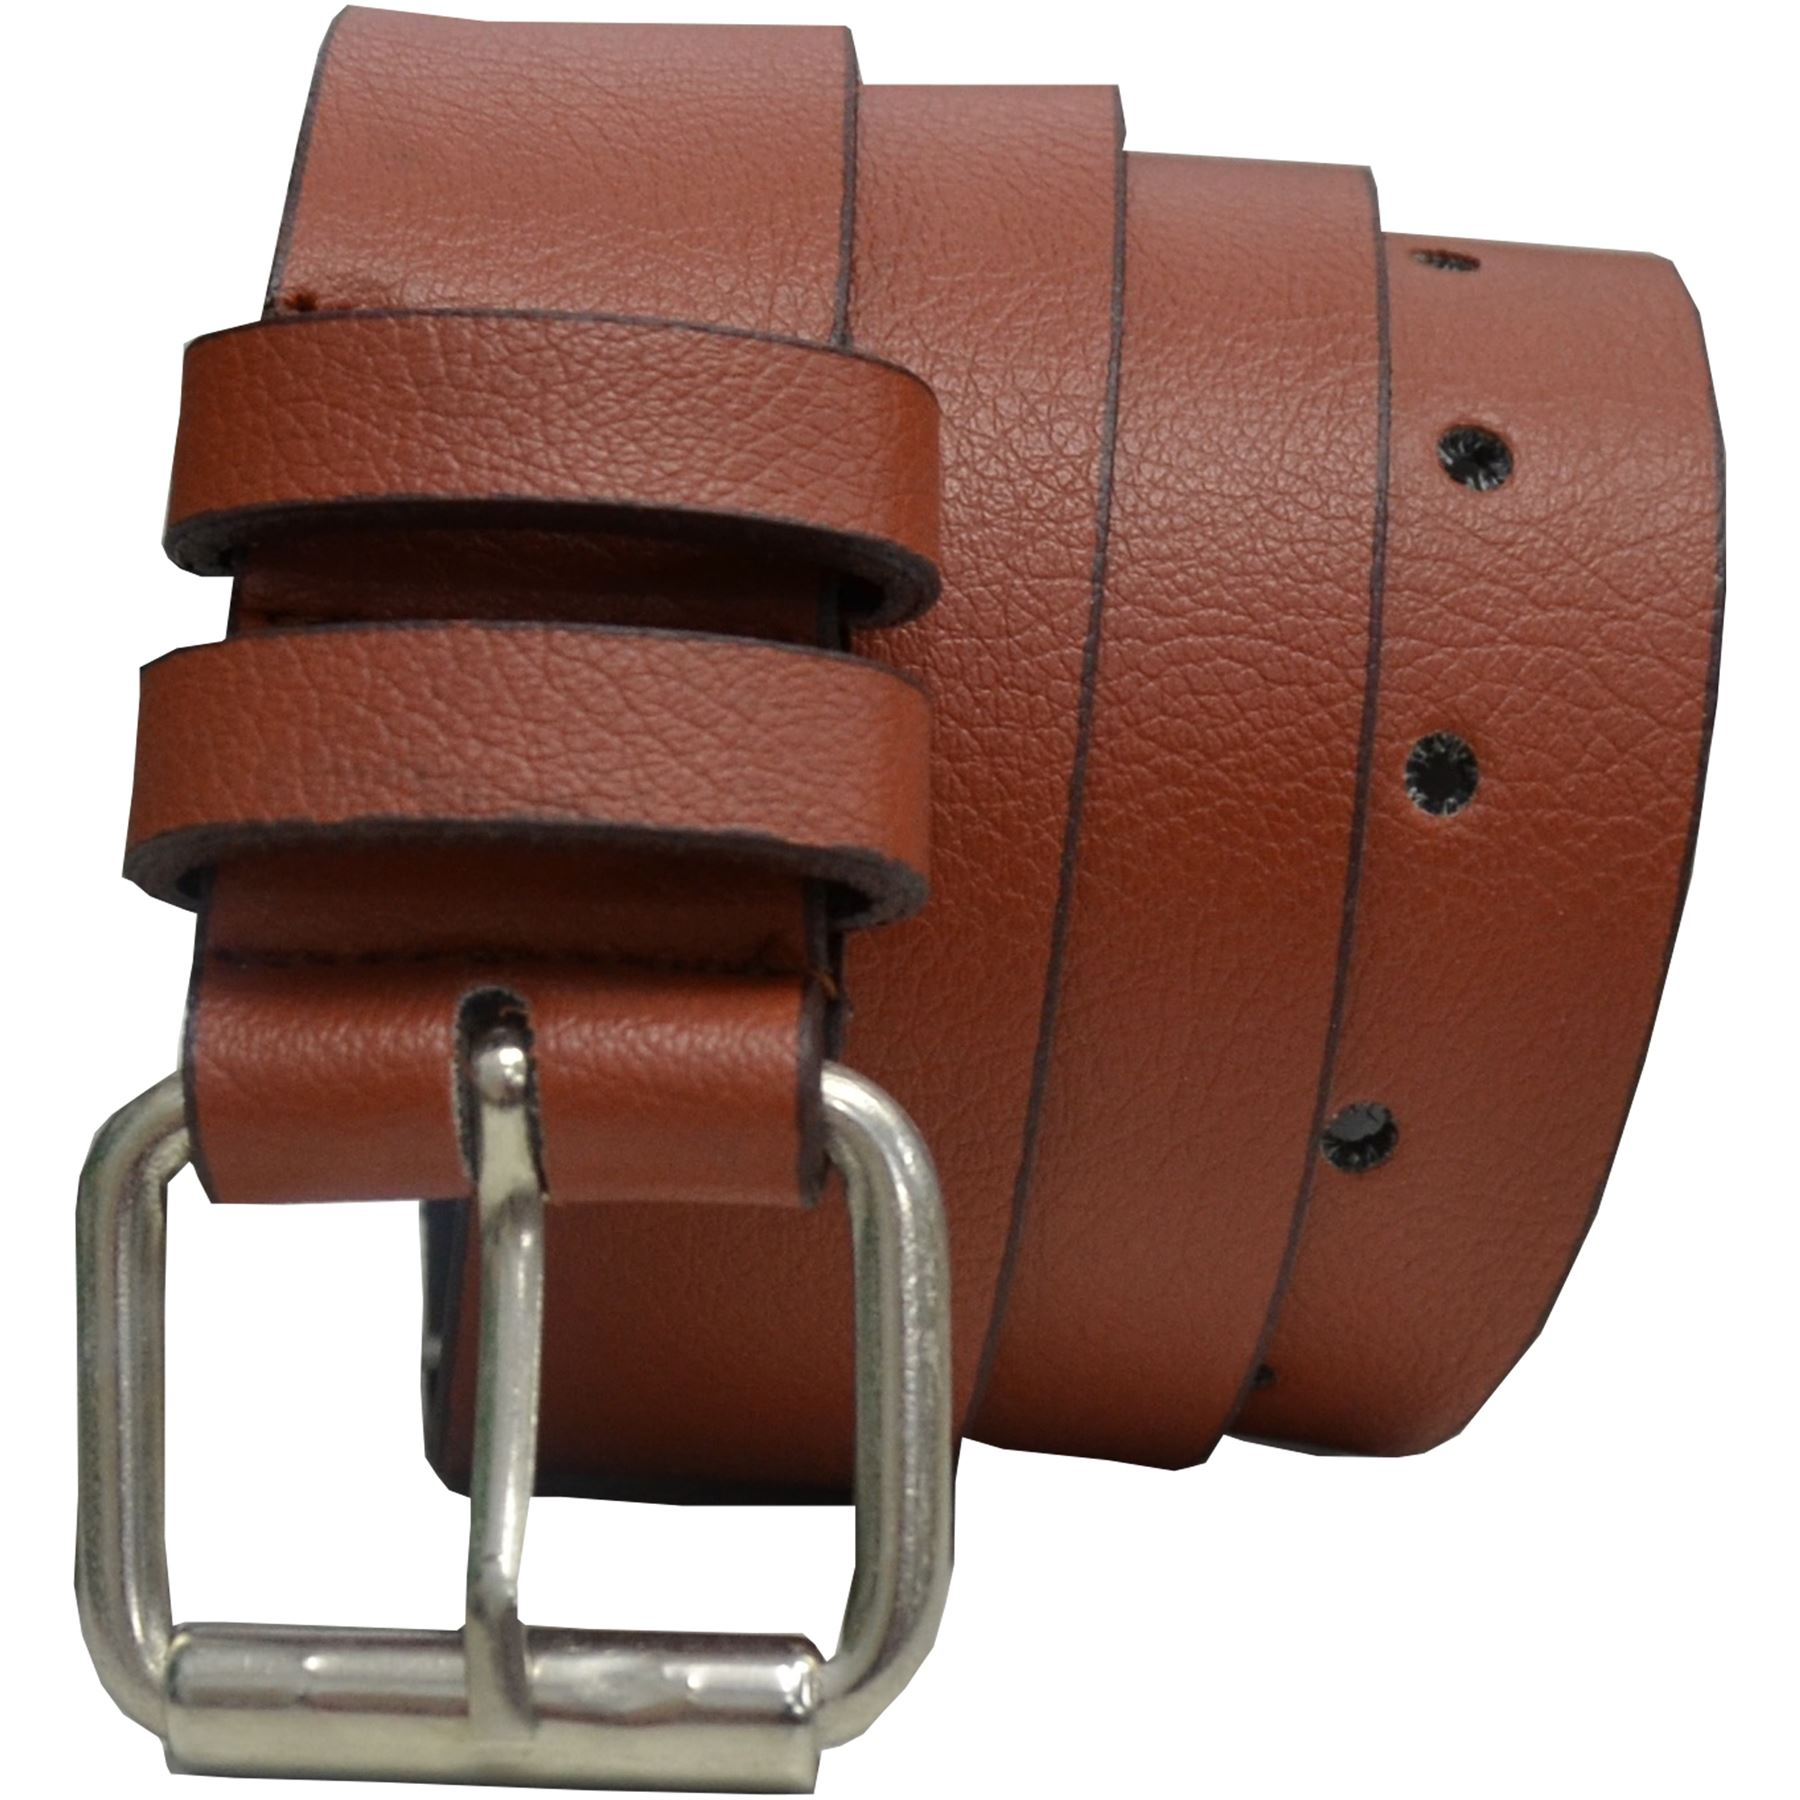 Eto Designer New Mens PU Leather Buckle Belt For Jeans Belts Big Tall King Sizes